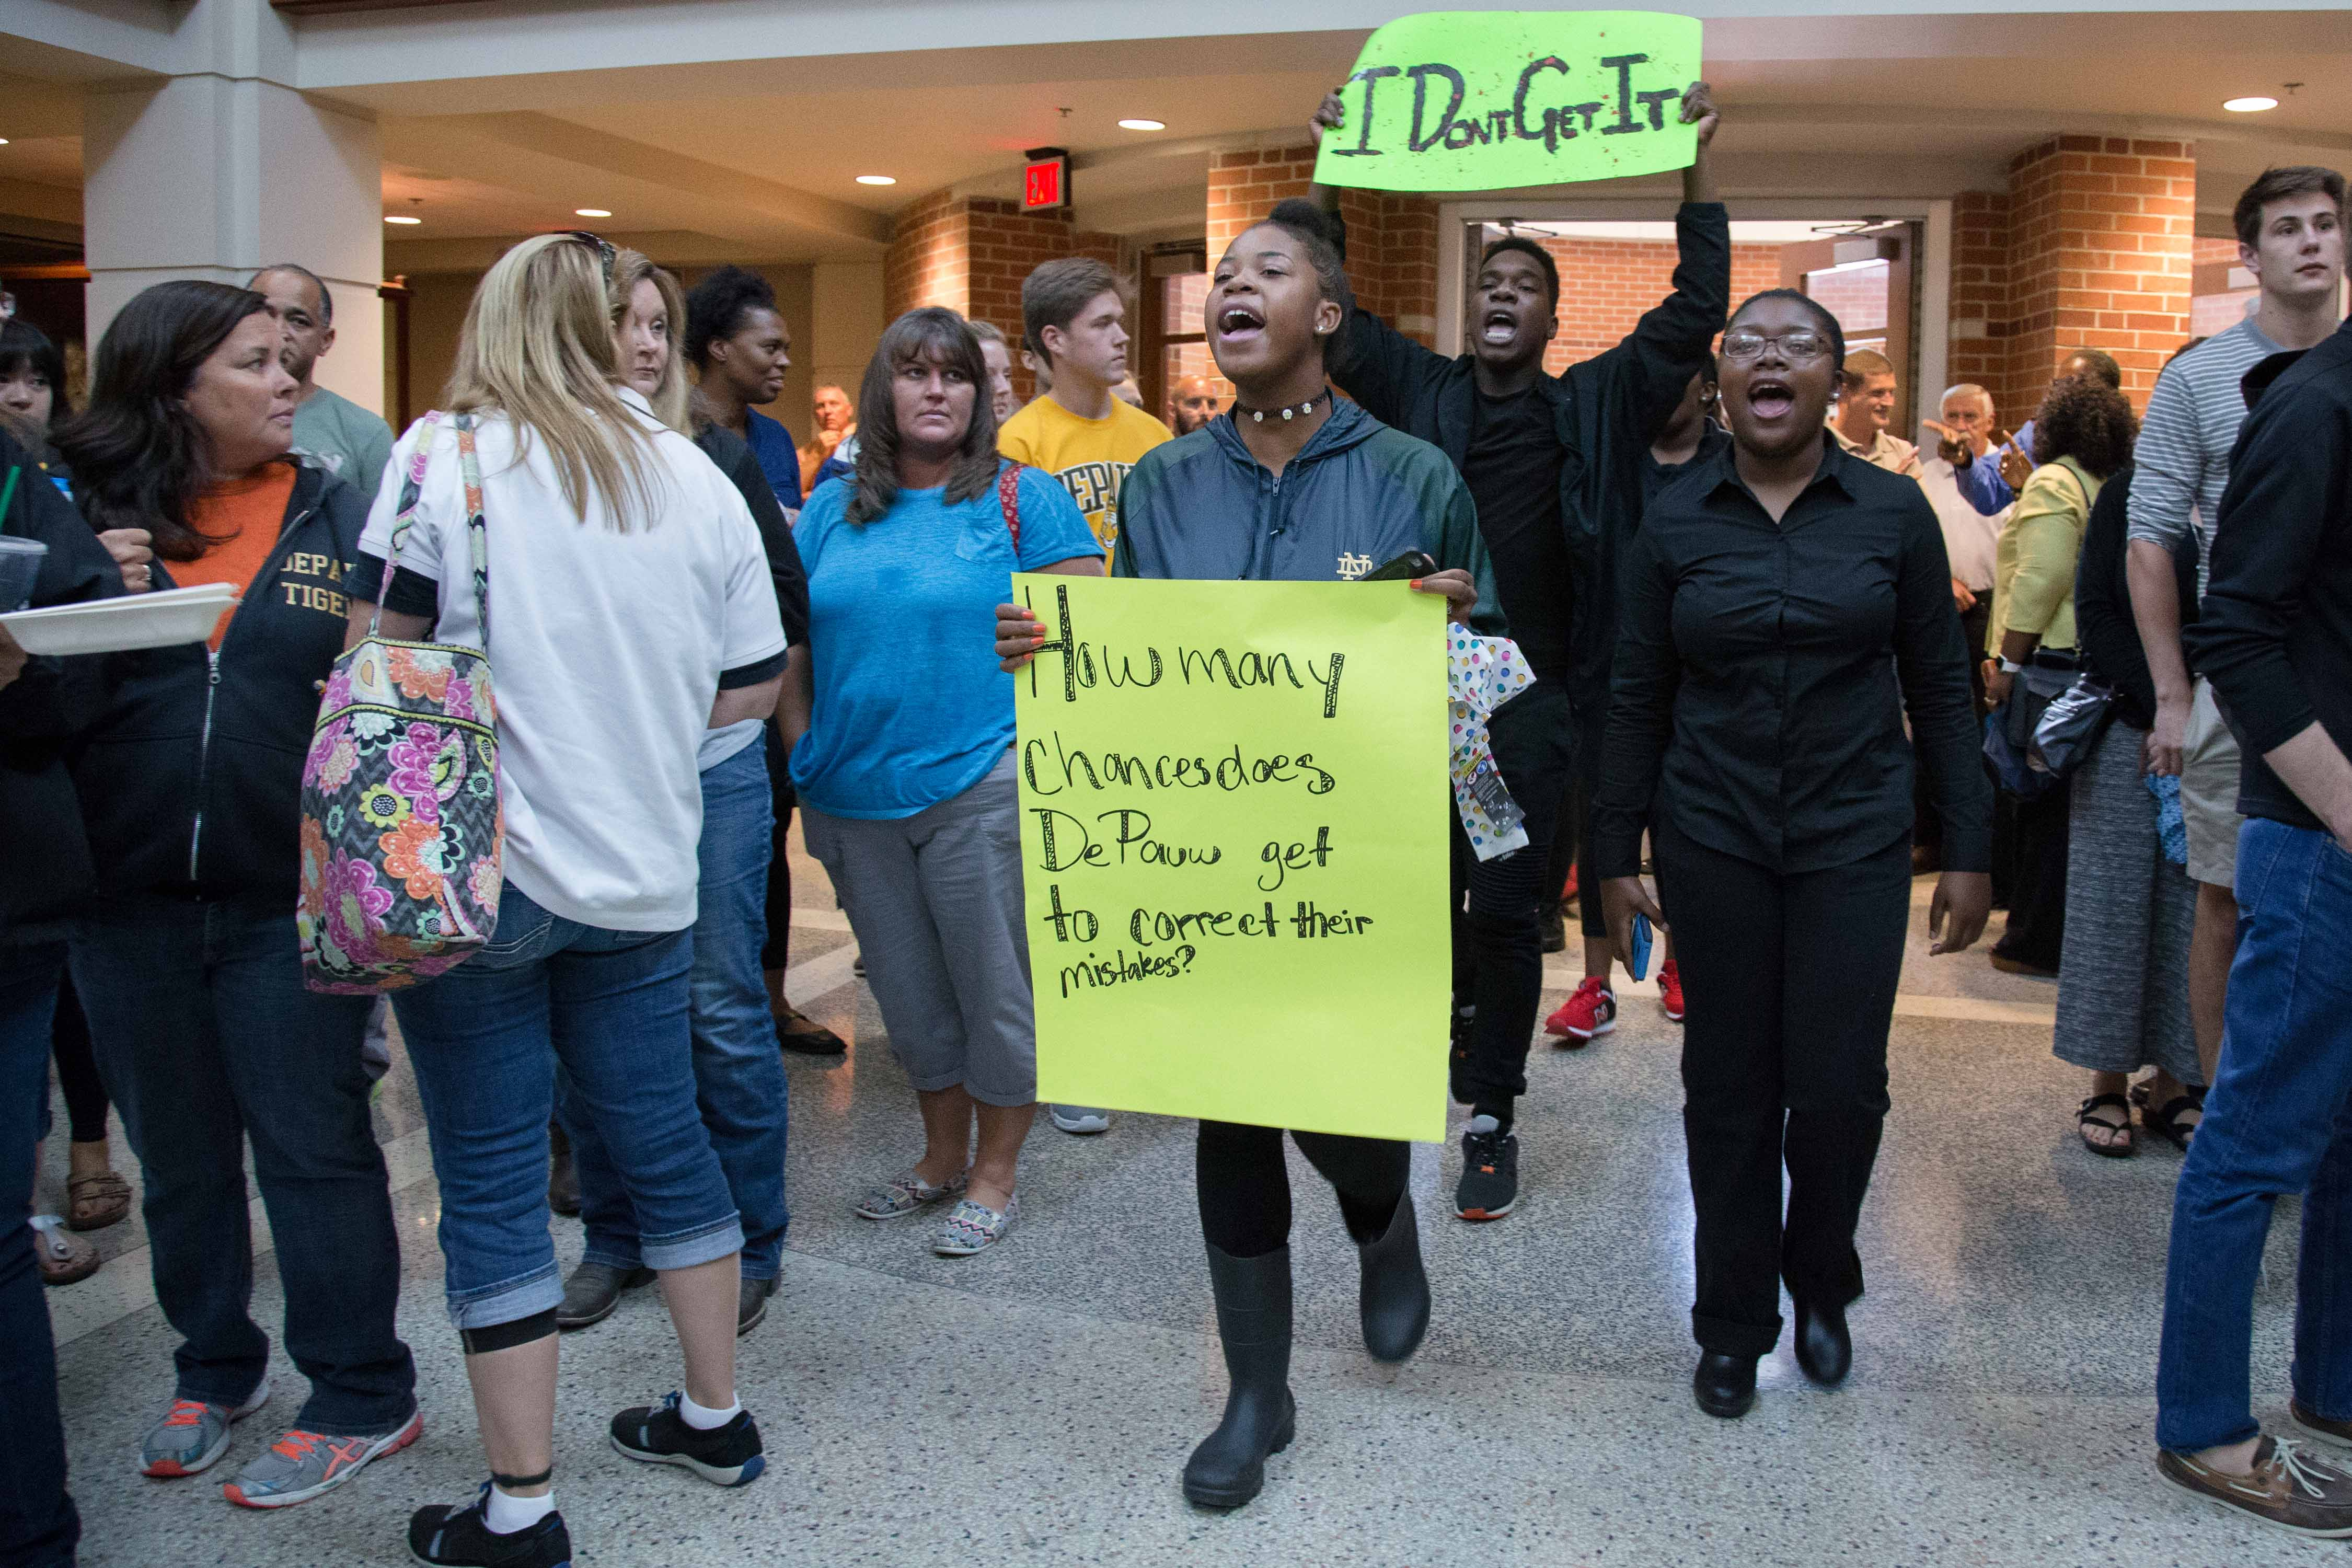 Student demonstrators march and chant as they walk through the Percy L. Julian Science and Mathematics Center. The group chanted as they walked through the buildings serving lunch to DePauw Dialogue attendees. SAM CARAVANA / THE DEPAUW